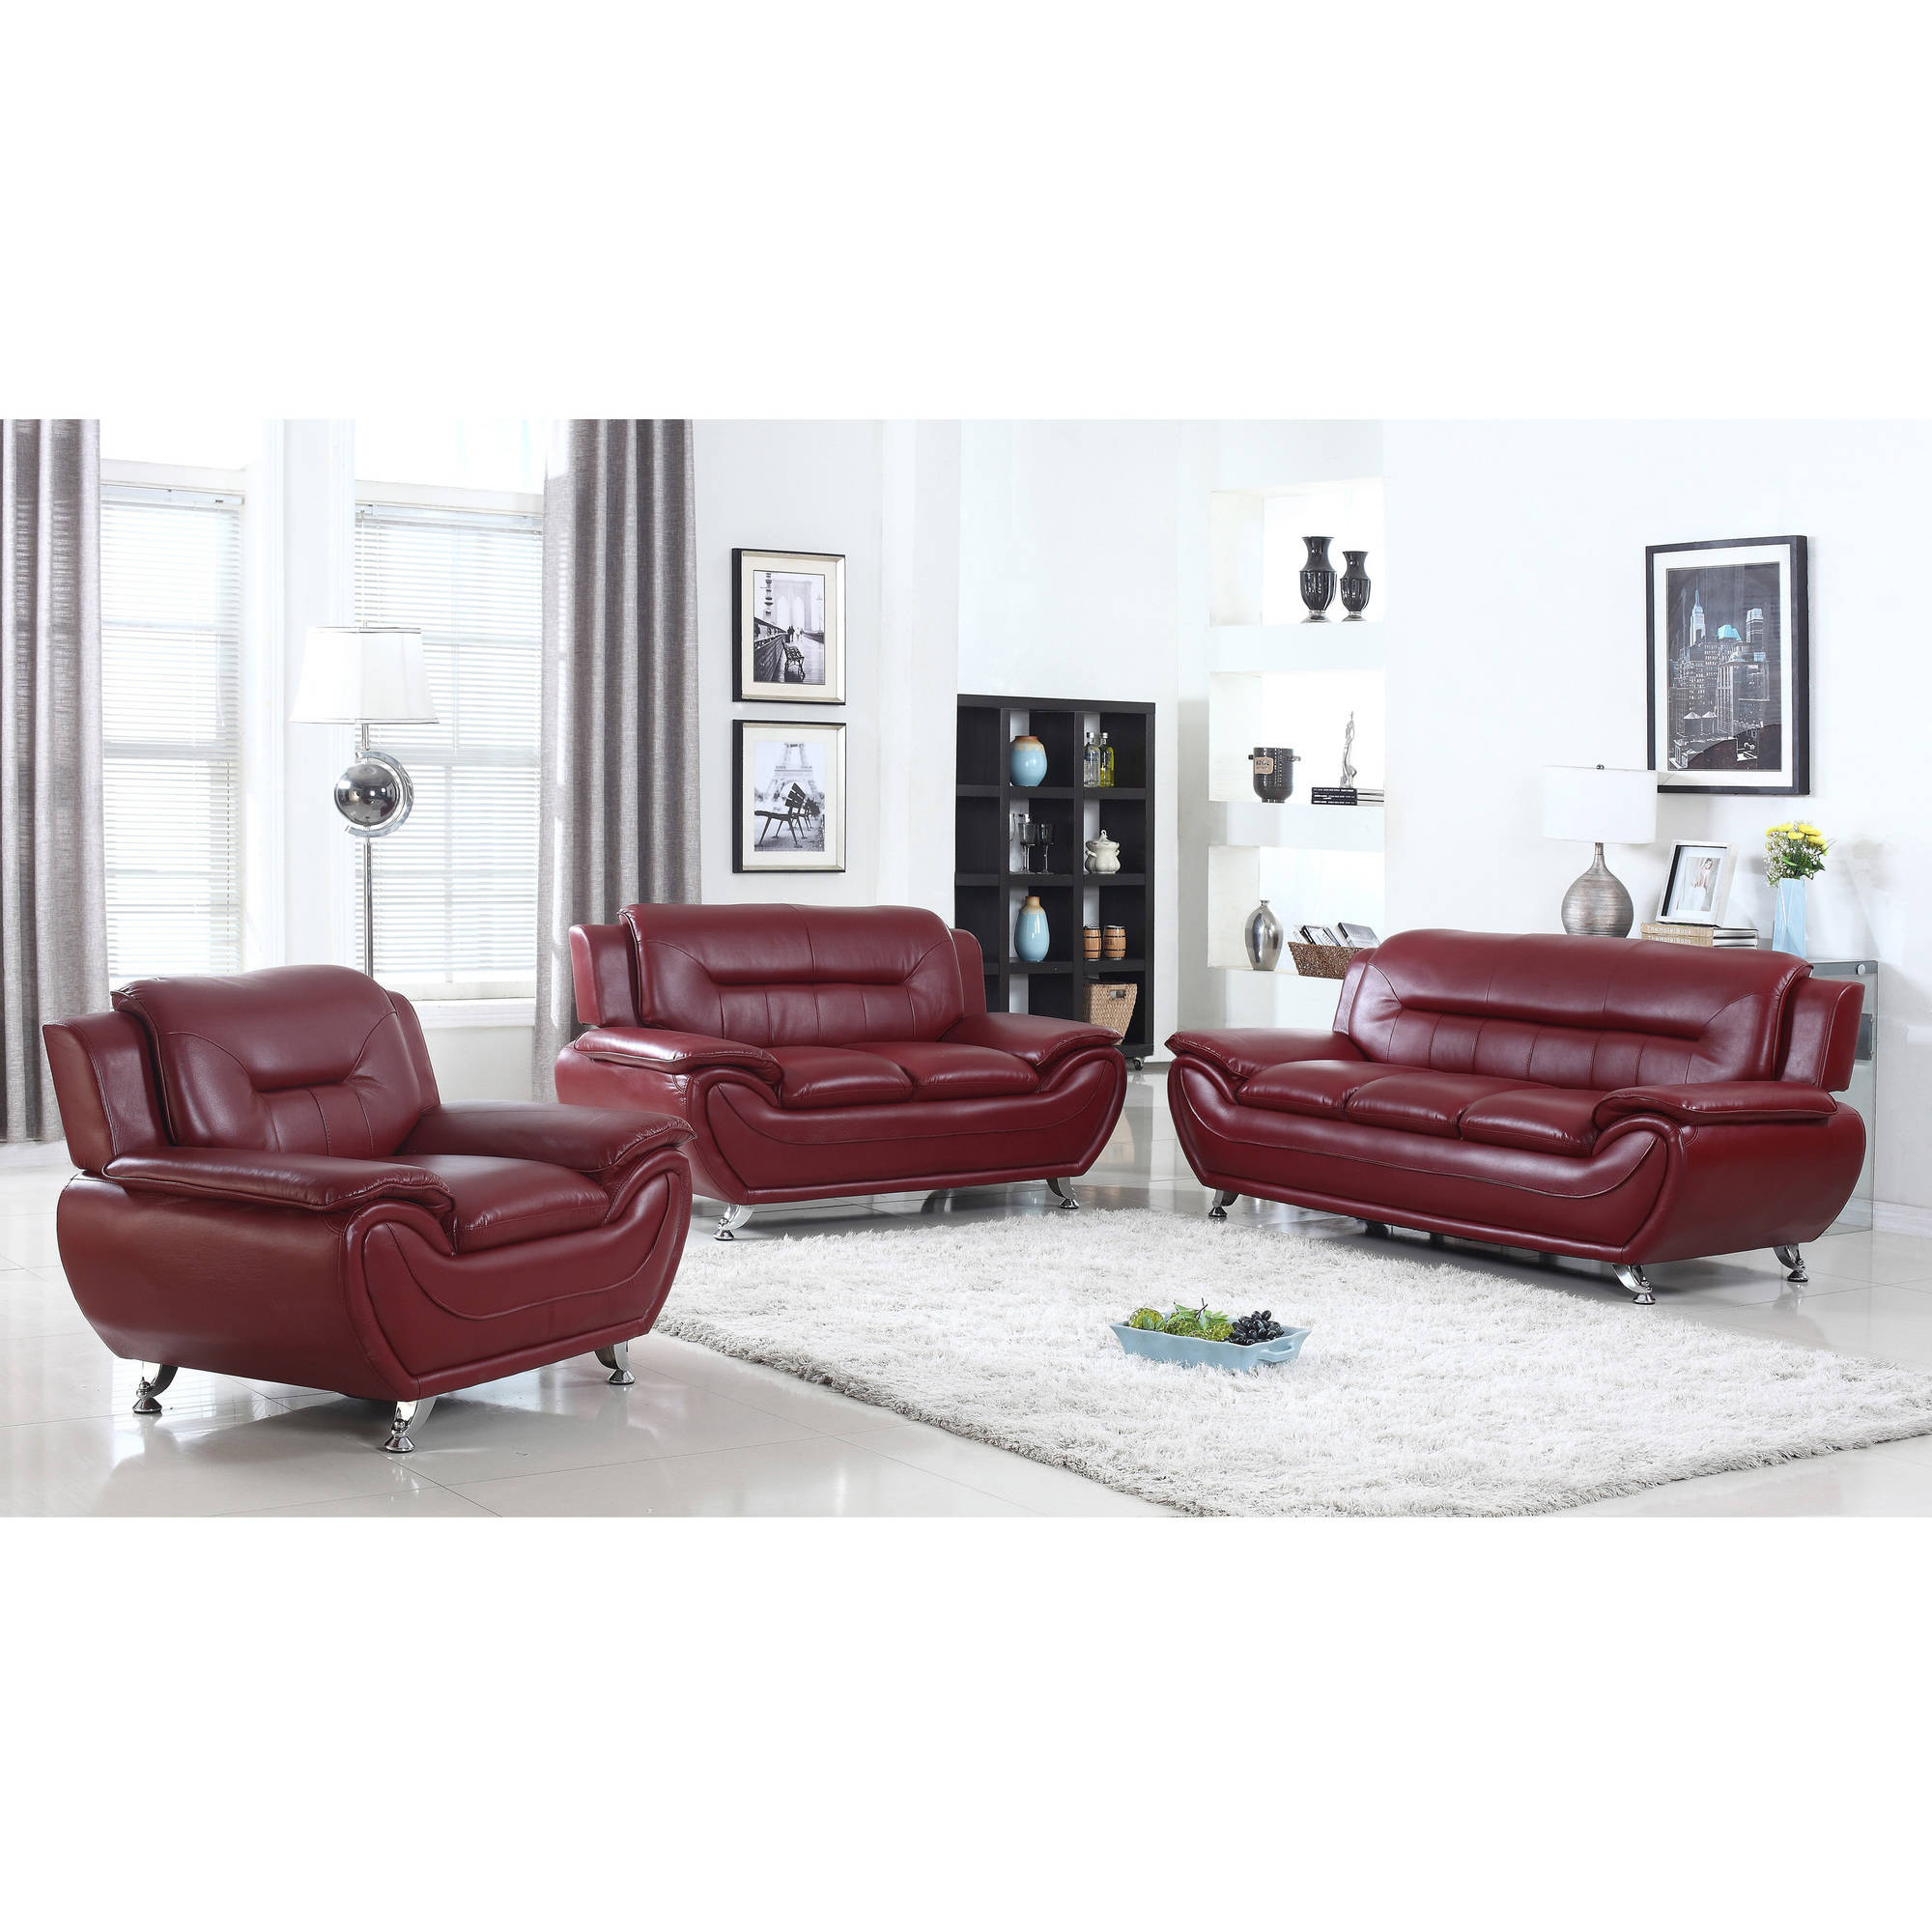 ufe norton burgundy faux leather 3-piece modern living room sofa